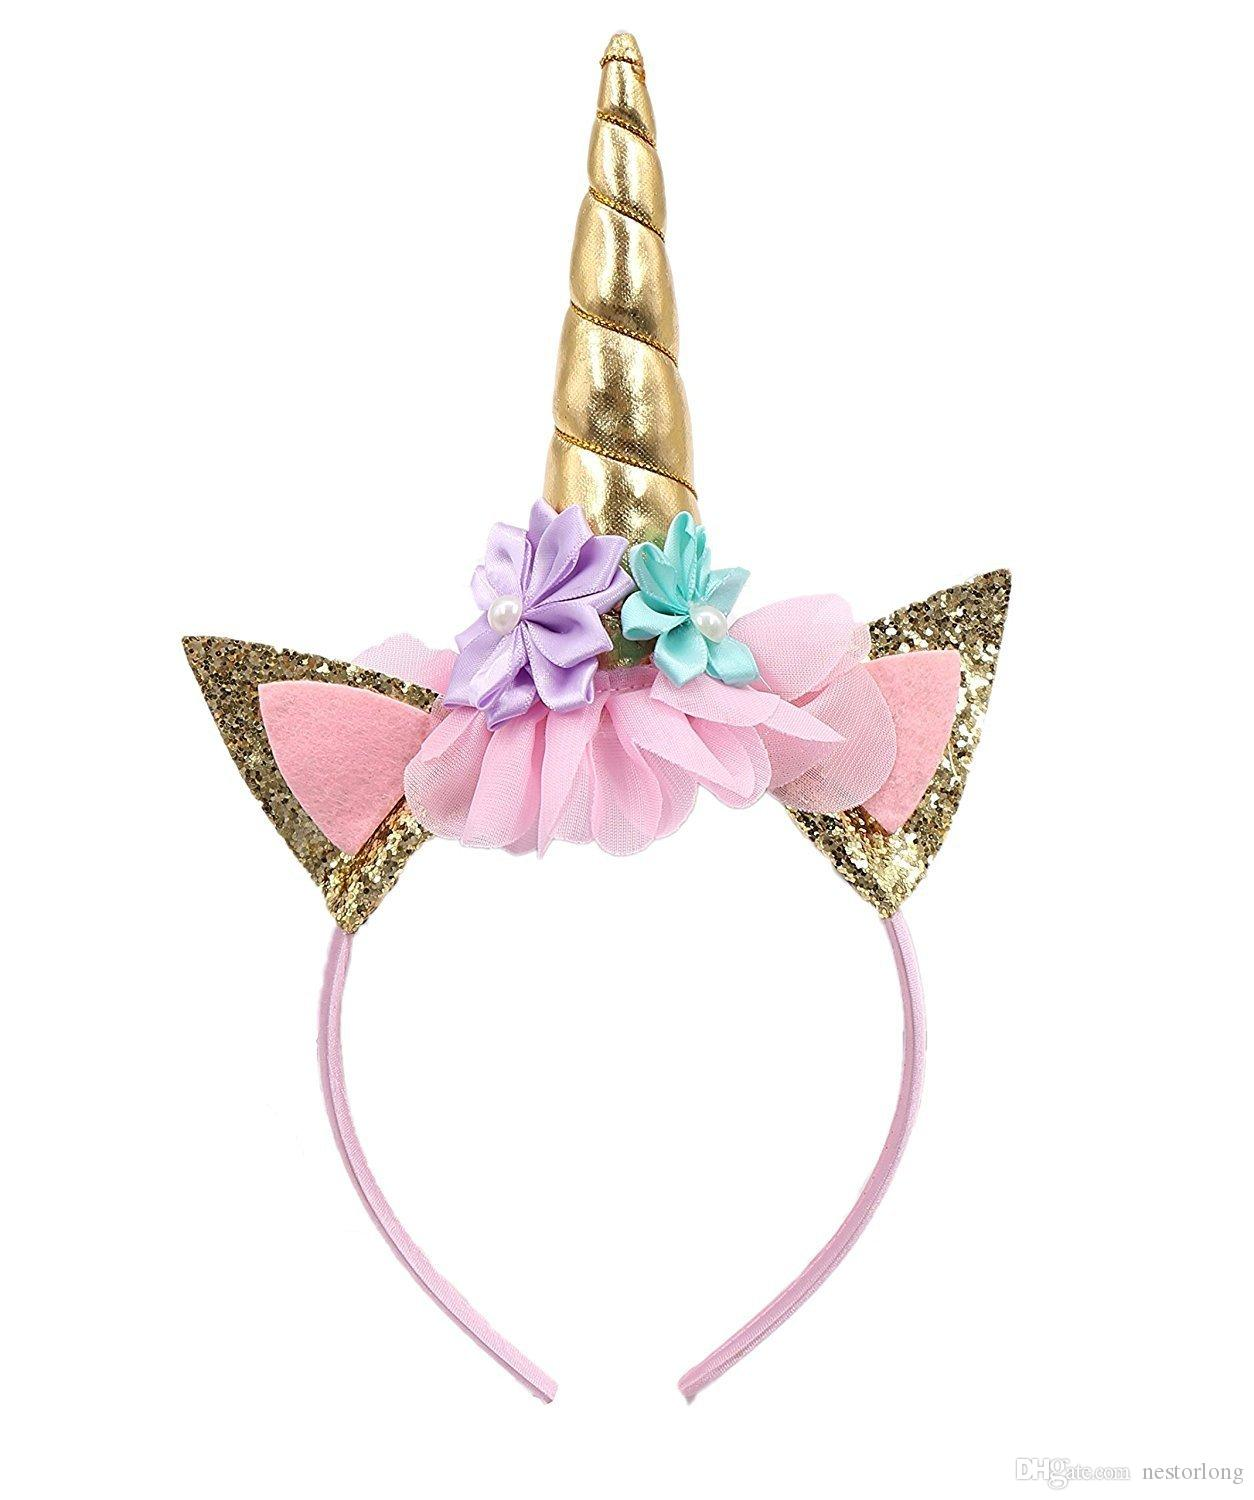 Handmade Kids Party Gold Unicorn Headband Horn Gold Glittery Beautiful Headwear Hairband Hair Accessories Gold/Silver